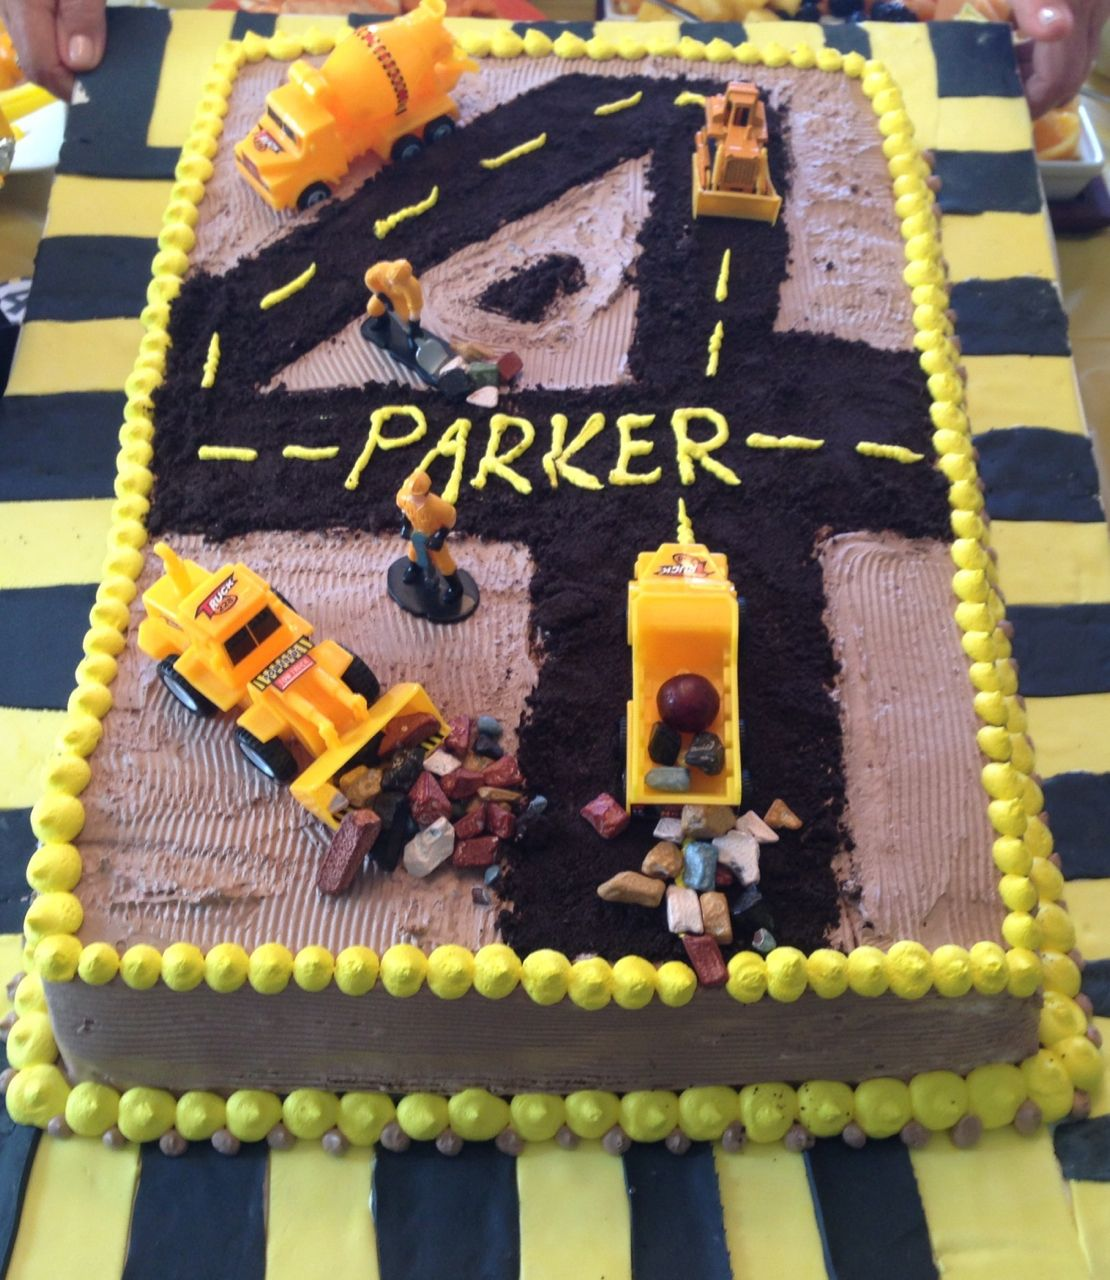 Construction Themed 4 Year Old Boy Birthday Cake. I Think